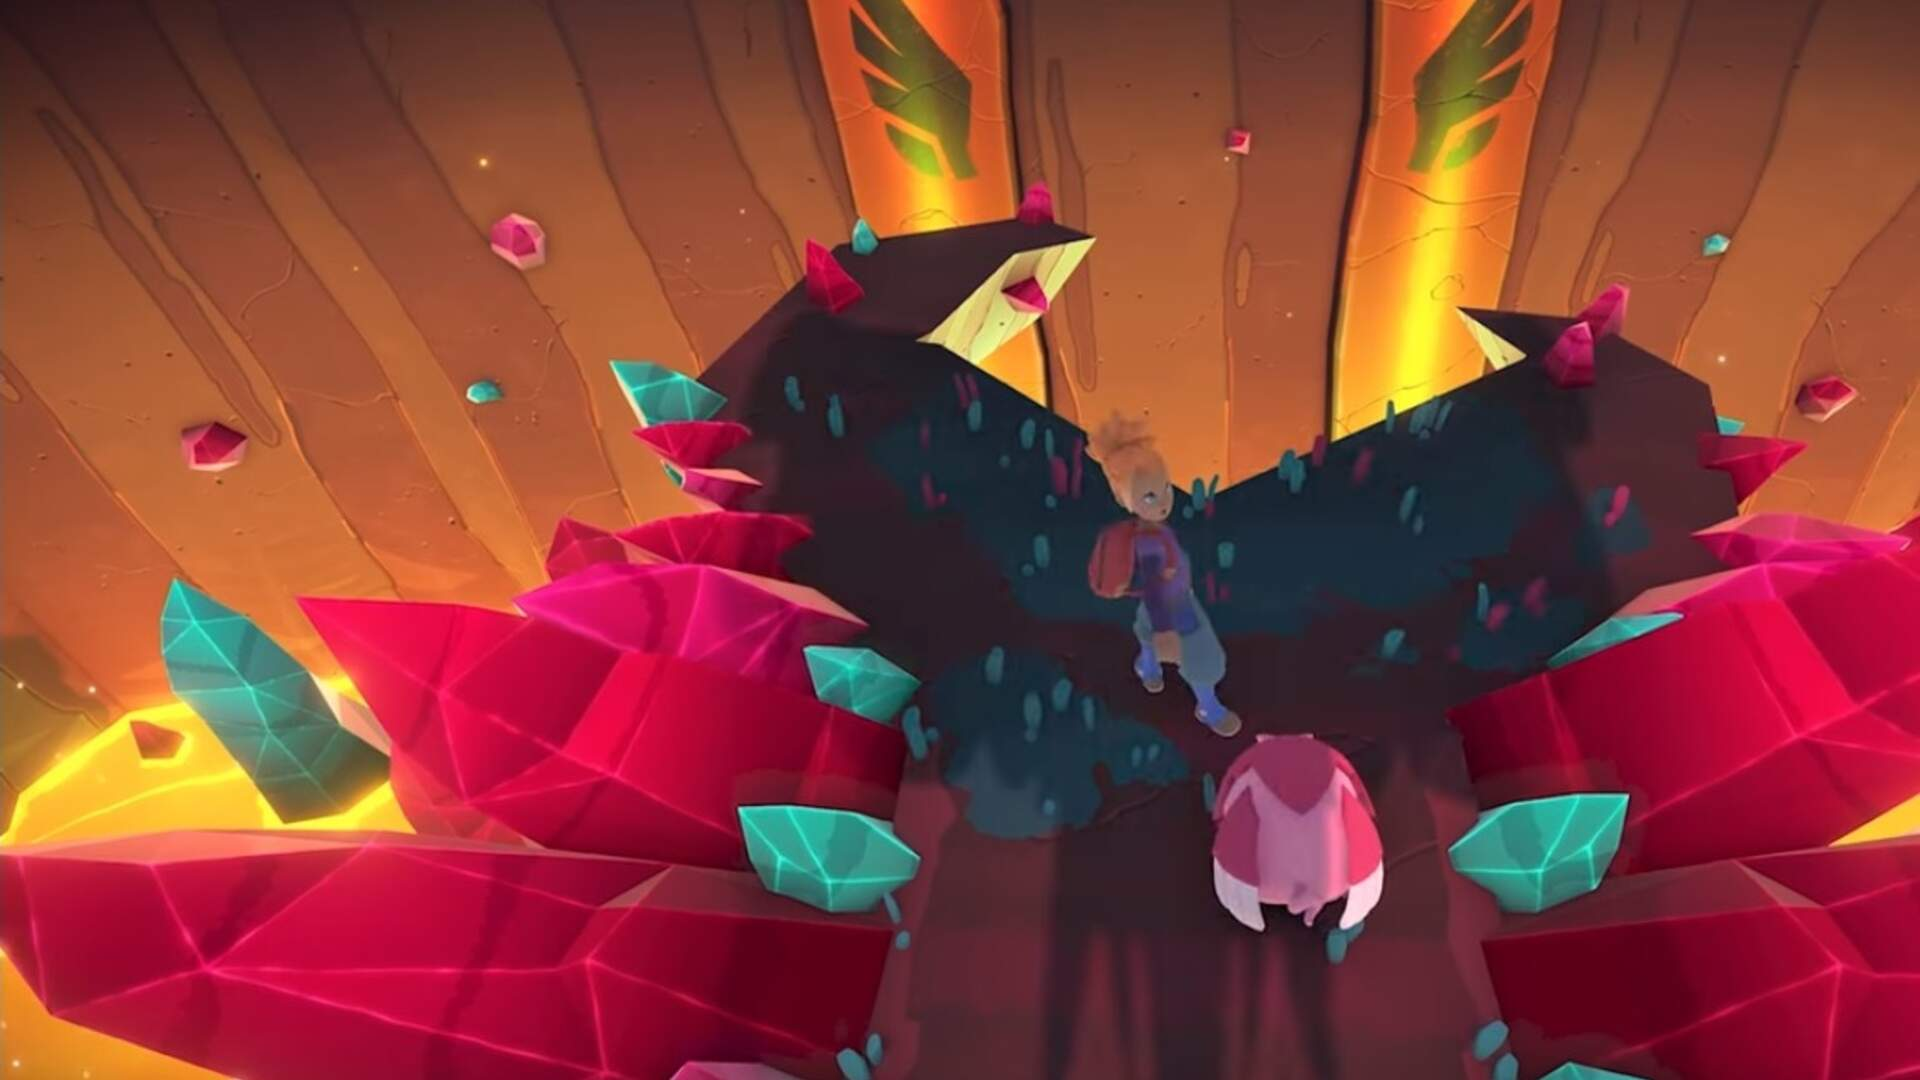 Temtem: Where to Find and Catch Mythical Temtem